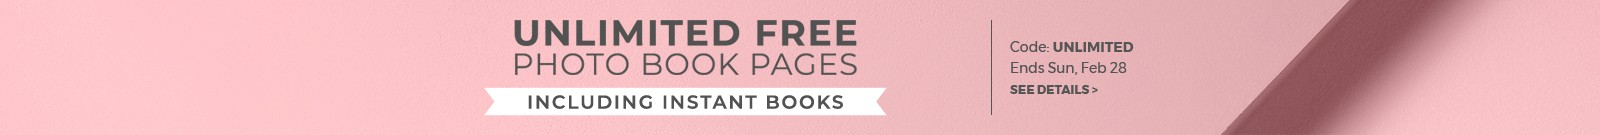 Unlimited free pages, including instant books, code: UNLIMITED, ends Sun, Feb 28